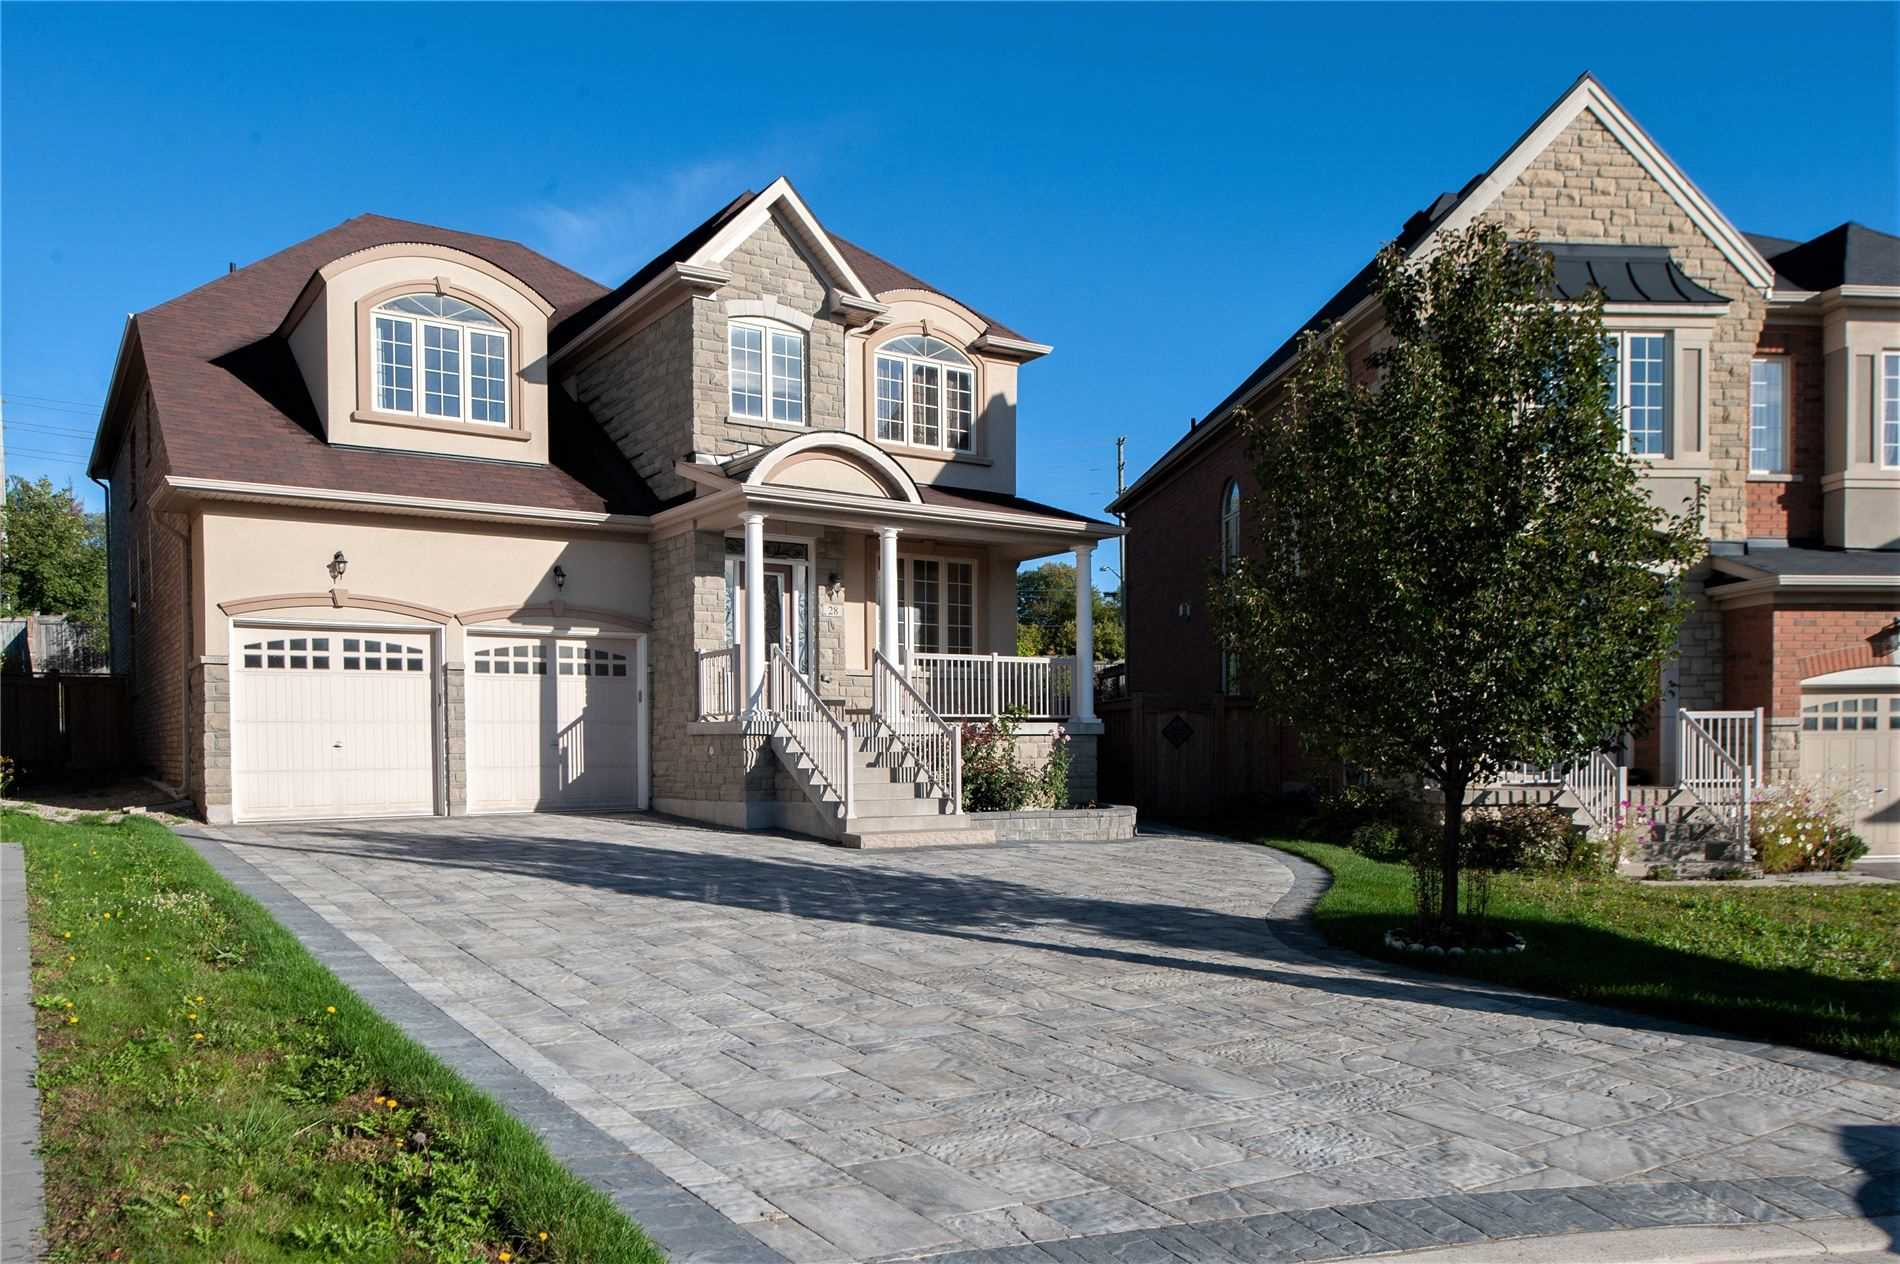 Detached house For Lease In Vaughan - 28 Countrywide Crt, Vaughan, Ontario, Canada L6A1W7 , 4 Bedrooms Bedrooms, ,5 BathroomsBathrooms,Detached,For Lease,Countrywide